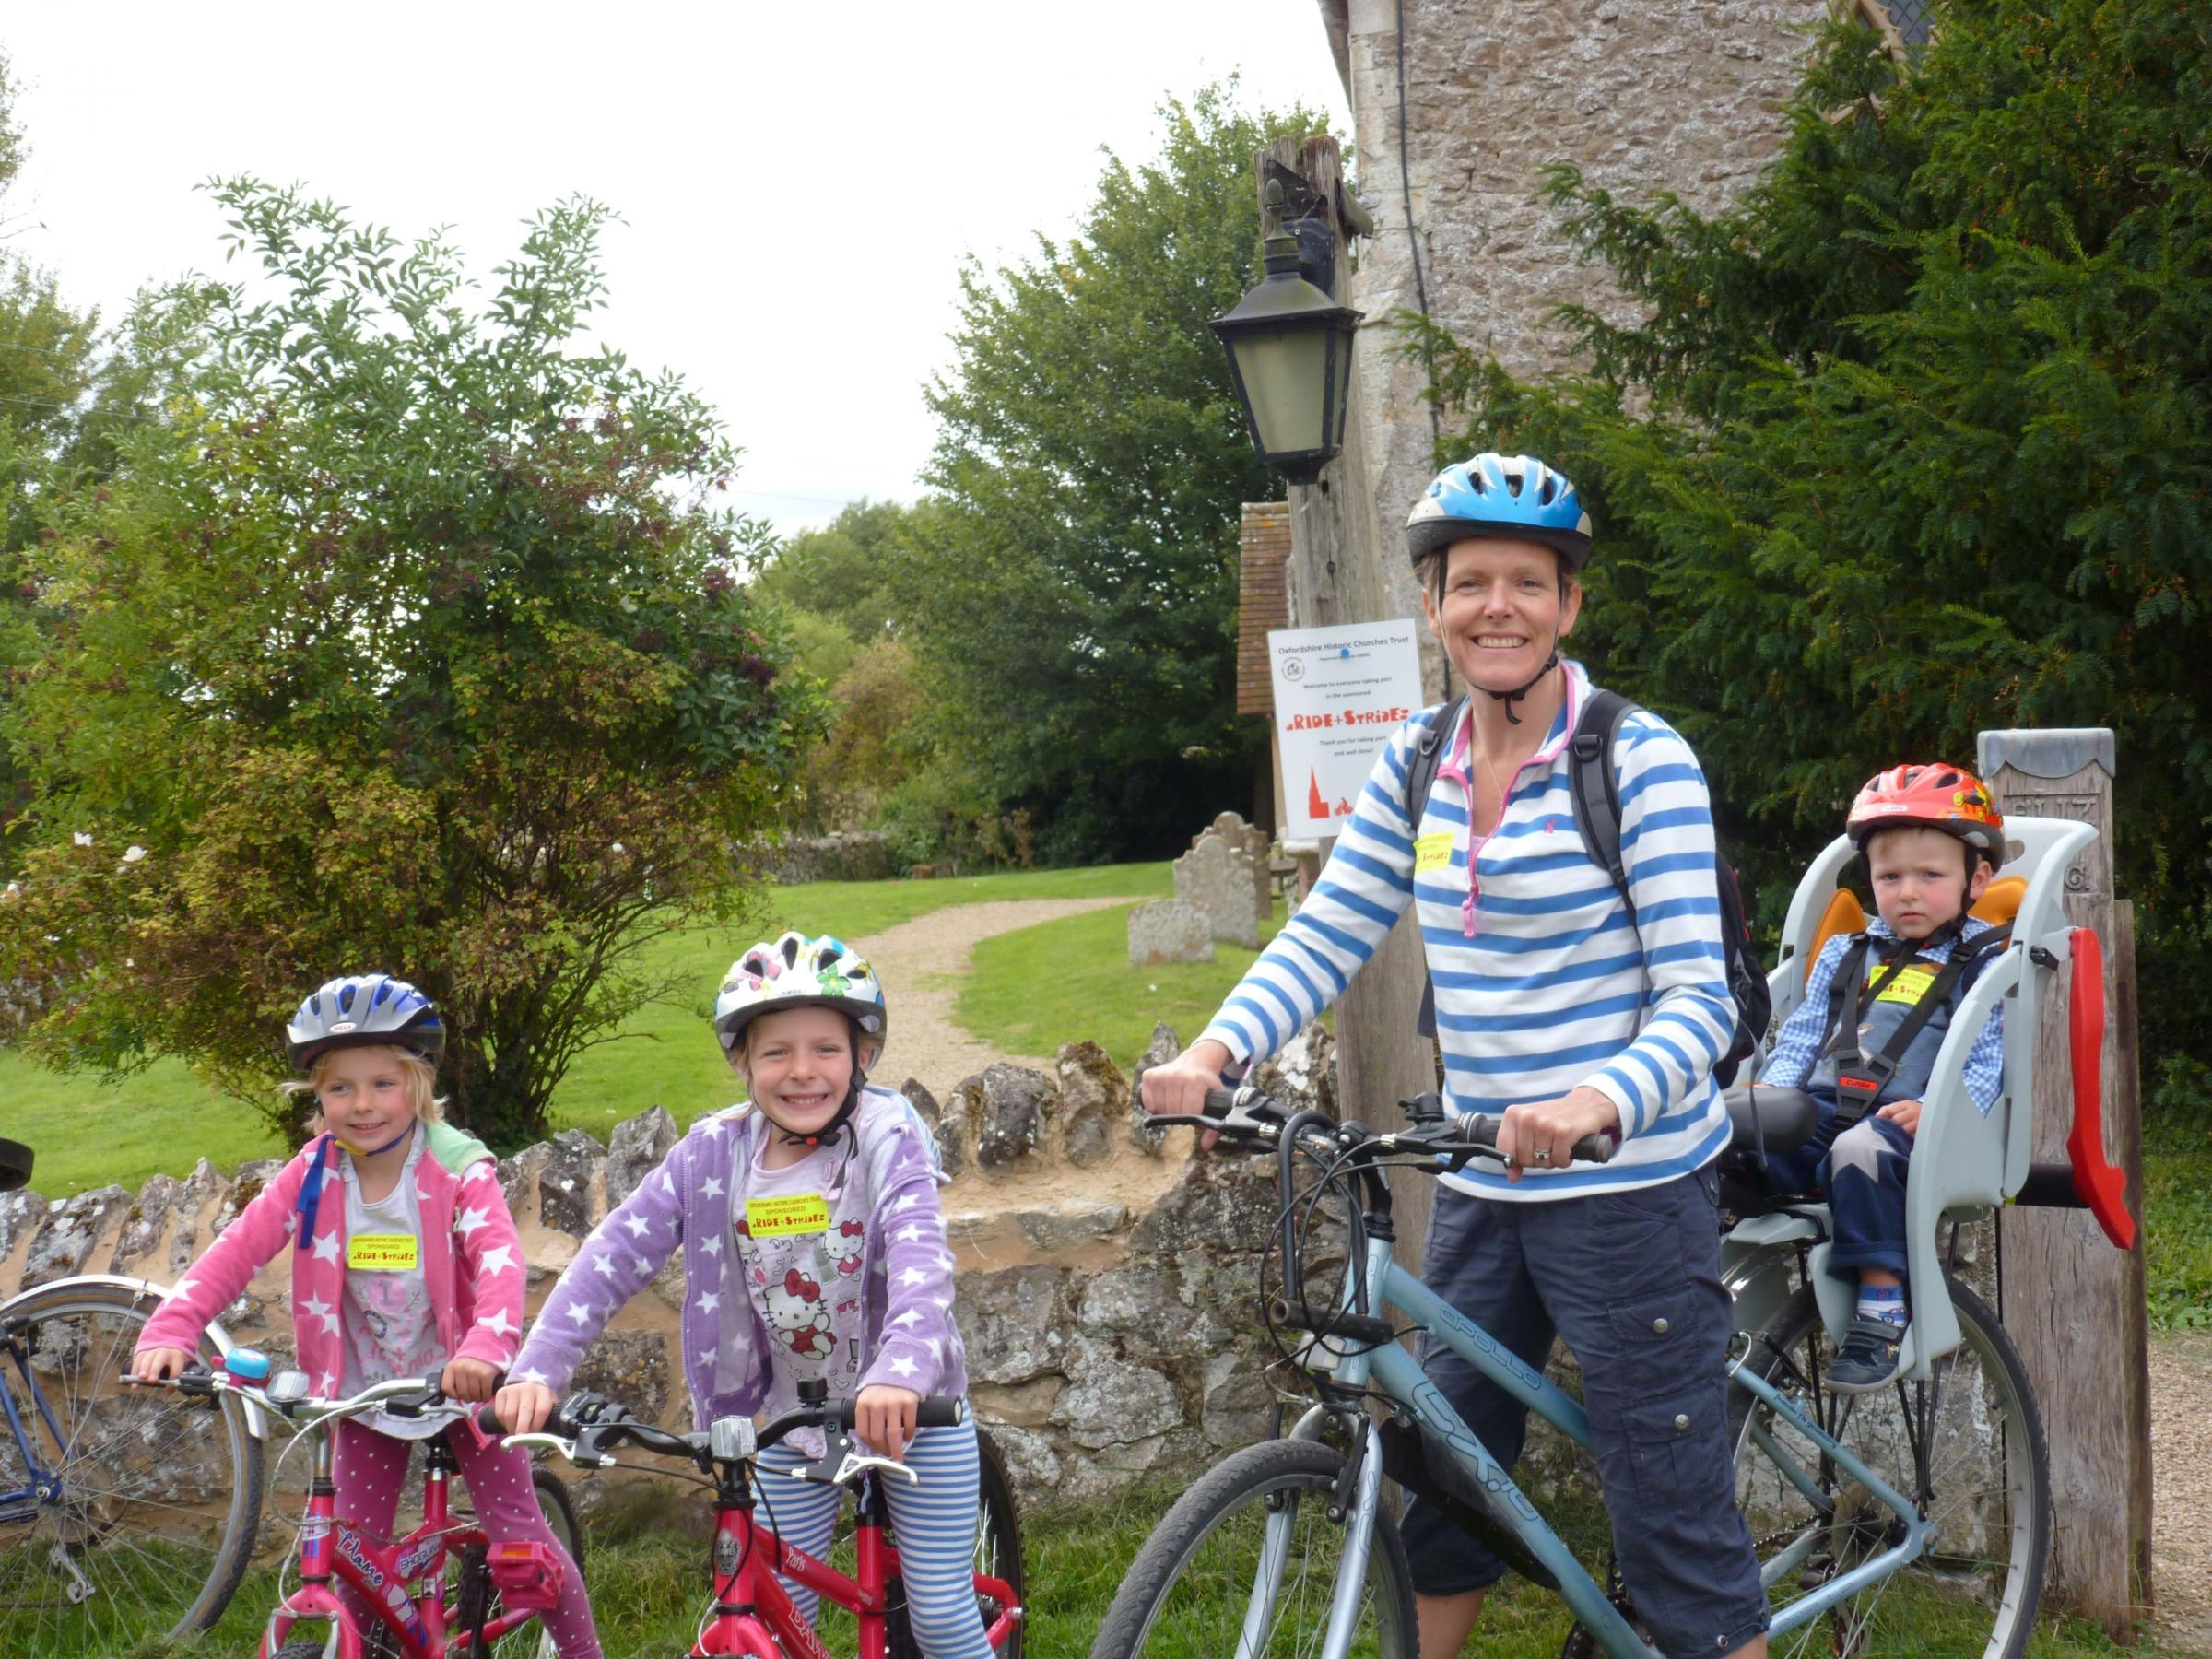 Annabel, Amelia, Joanna and George Gillington taking part in Ride and Stride